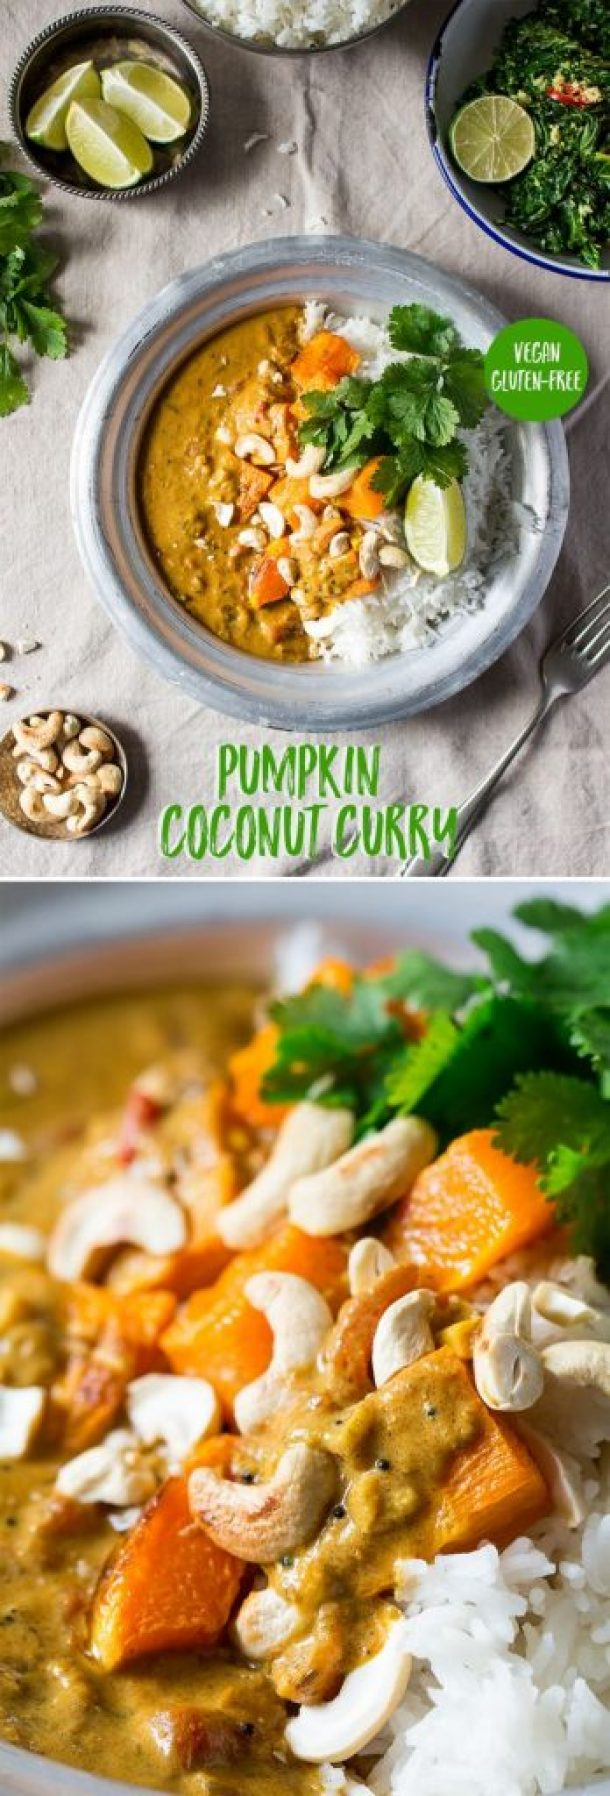 Vegan and Gluten Free Pumpkin Coconut Curry Recipe | Lazy Cat Kitchen